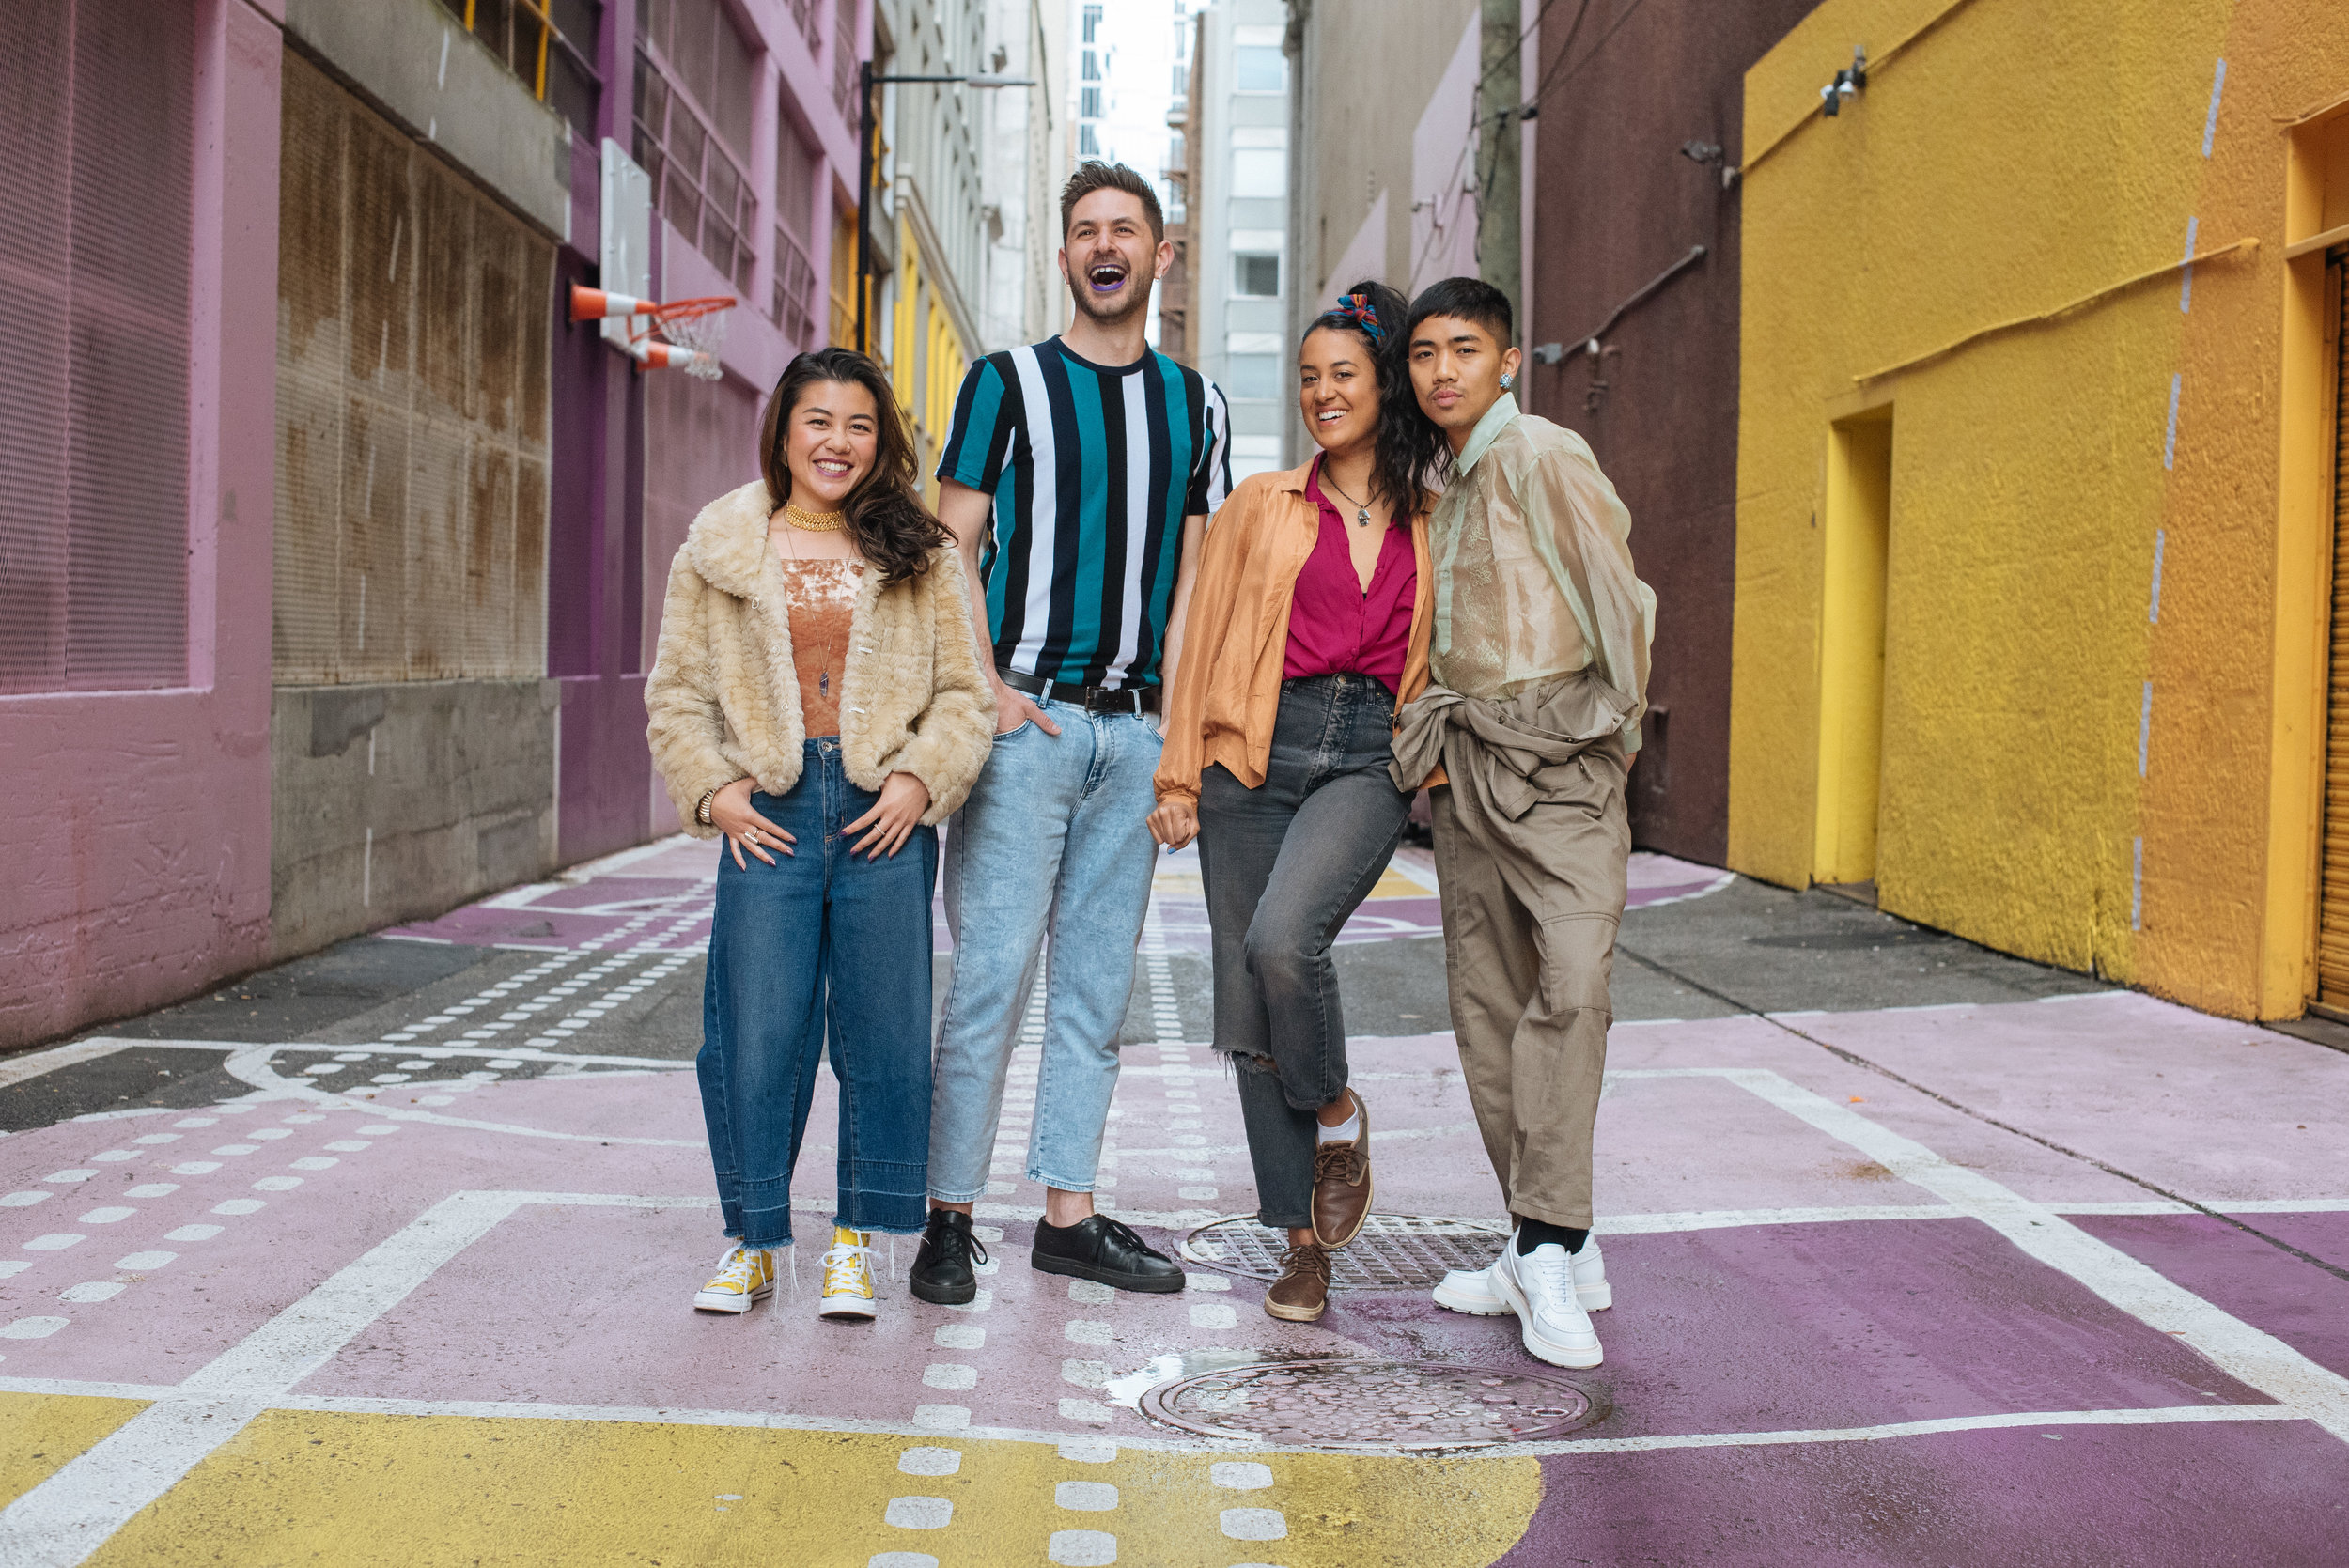 Public Disco Laneway Series curators: Char Loro, Nick Collinet, Larisa Sanders, and Ralph Escamillan photographed by Sam Steele.